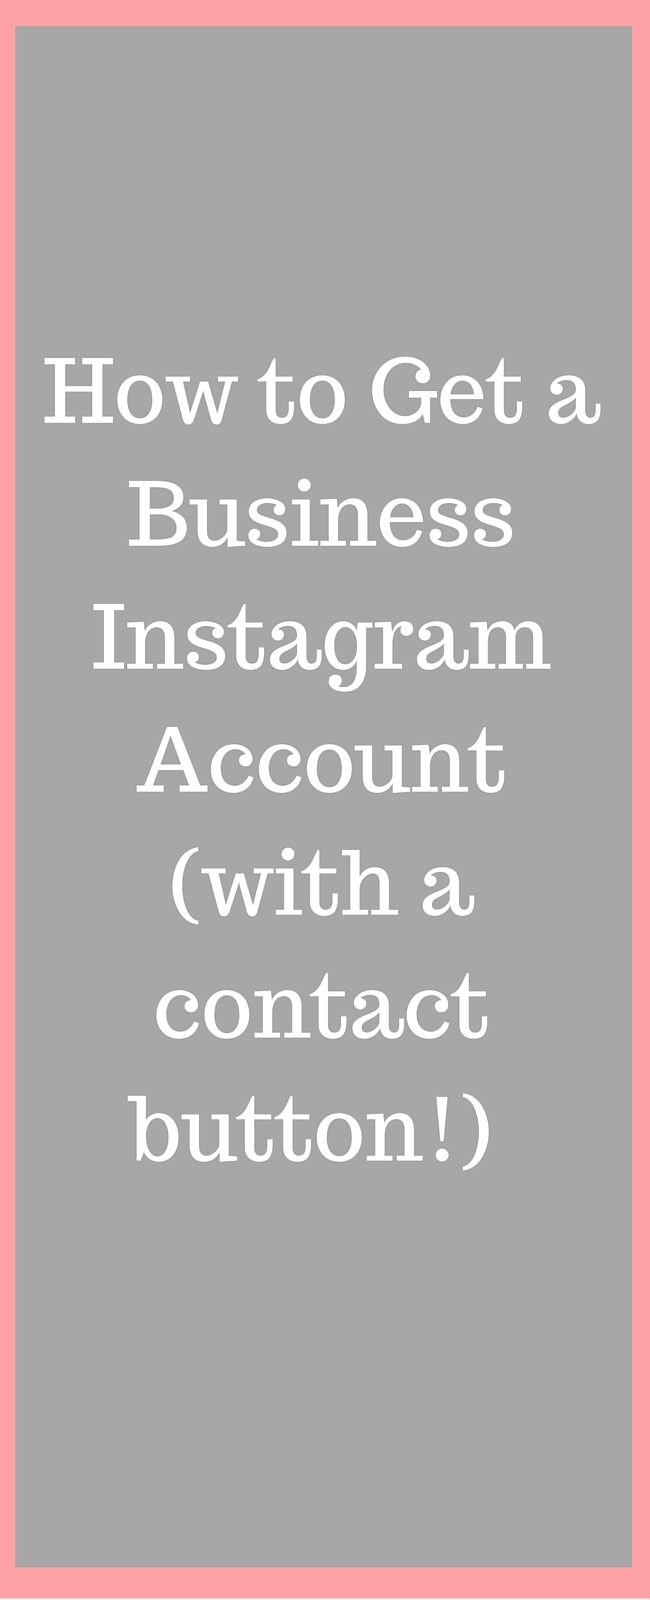 how-to-get-a-business-instagram-accountwith-a-contact-button-9170286